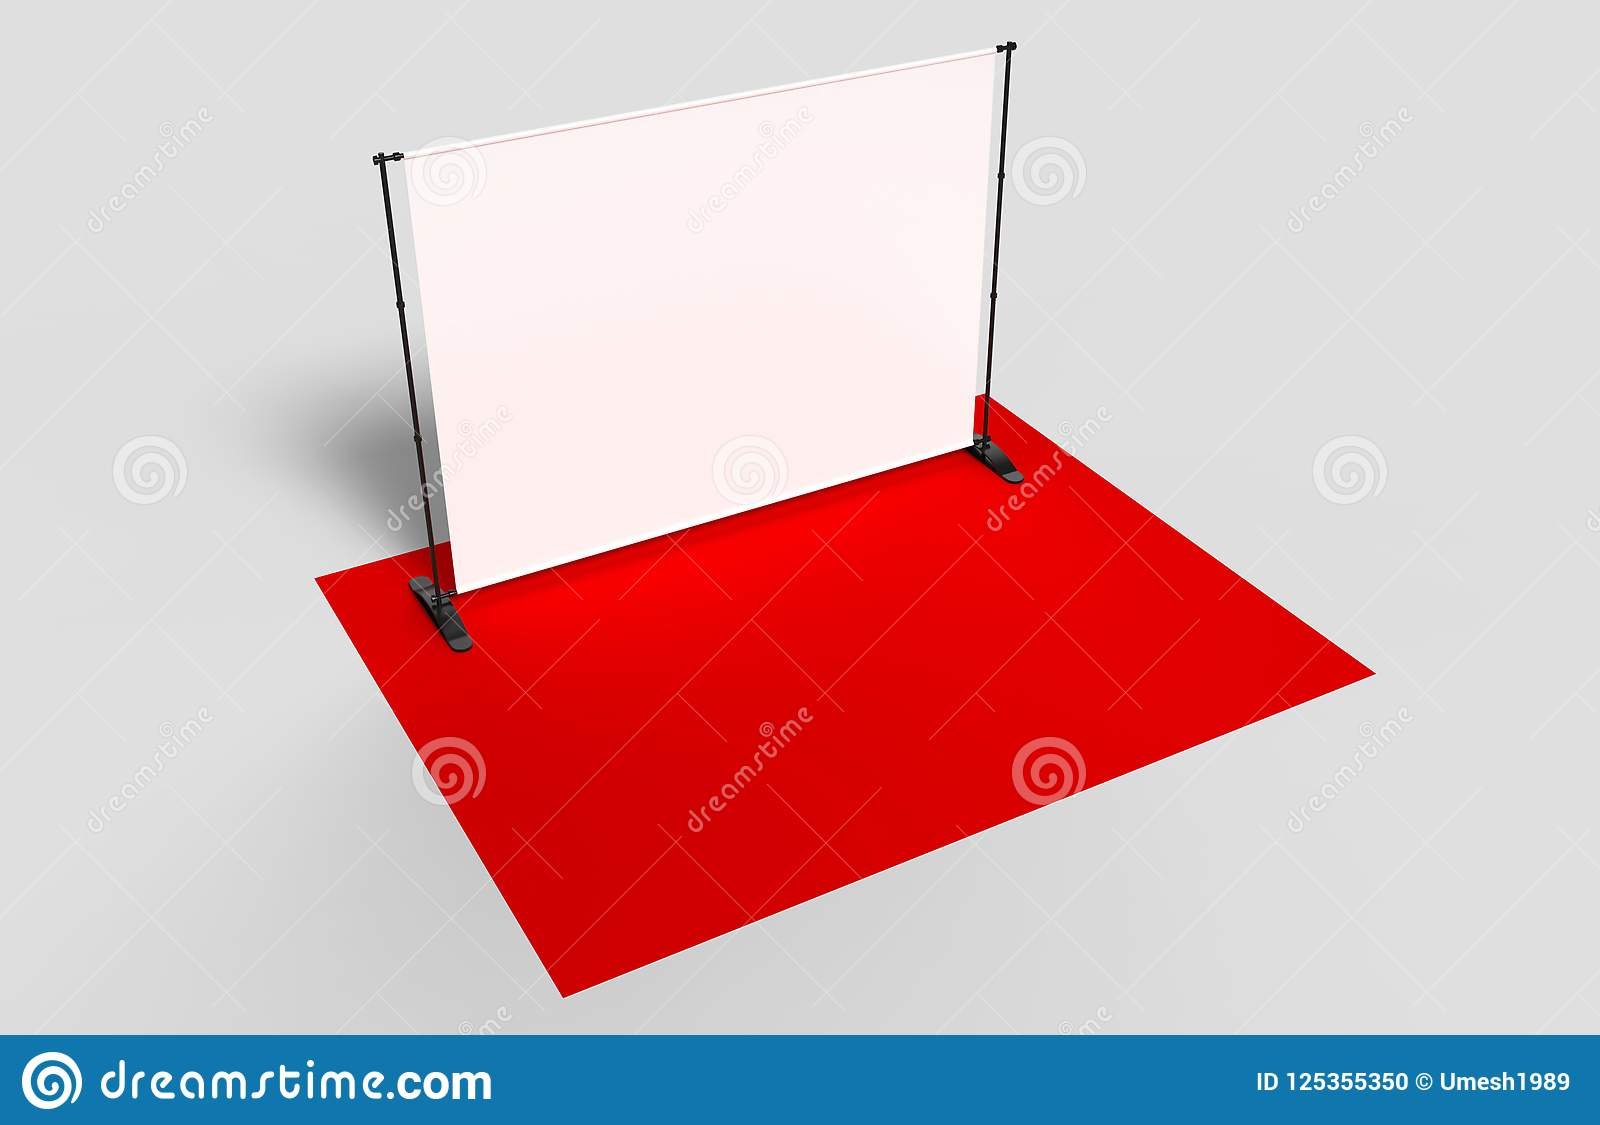 Check out this step and repeat banner mockup it is the finest we have come across on the internet the standing frame banner is a rectangular 3d banner that is suitable for outdoor and indoor advertising purposesthey can serve as an impressive way to get the word out in exhibitions offices malls halls stalls and more. Step Repeat Mock Stock Illustrations 27 Step Repeat Mock Stock Illustrations Vectors Clipart Dreamstime